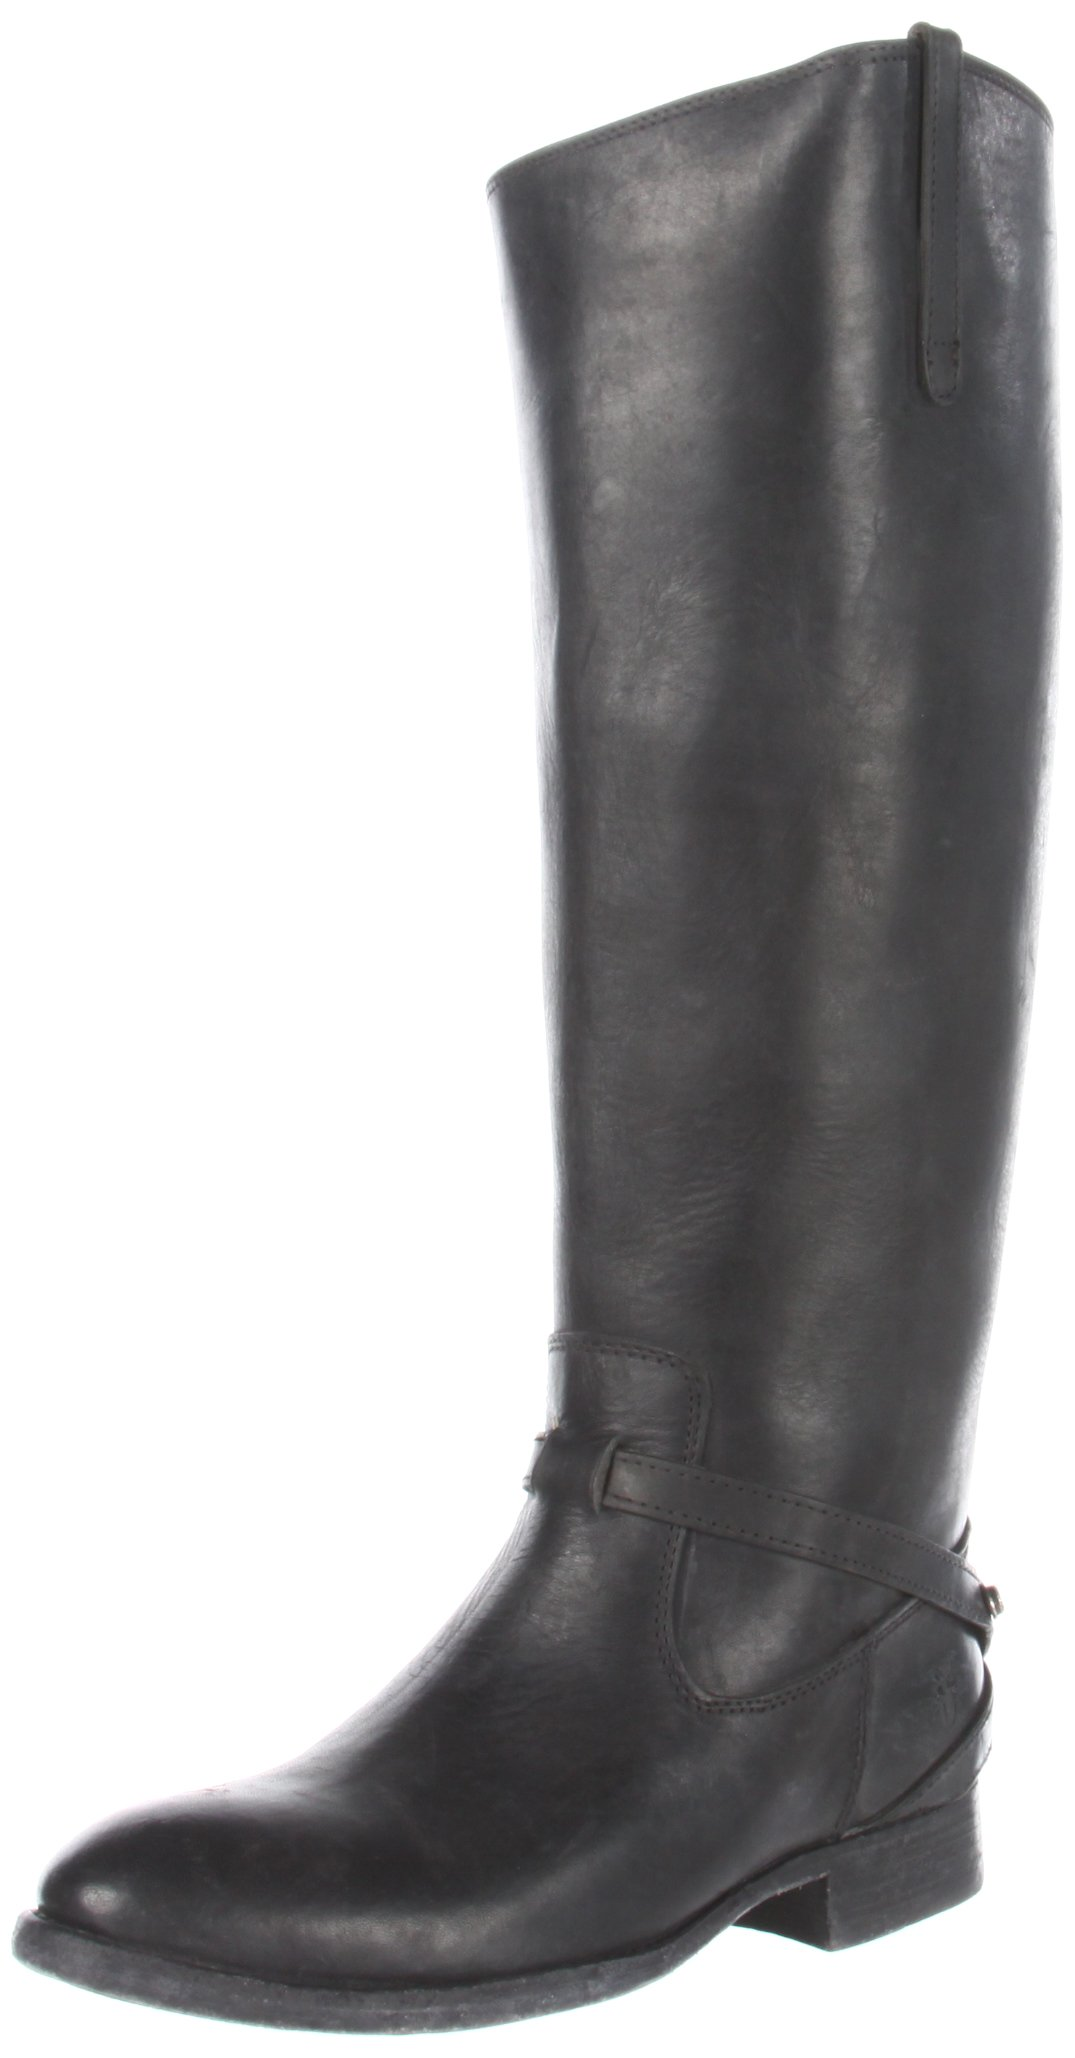 FRYE Women's Lindsay Plate Knee-High Boot,Black Stone Antique Leather,6.5 M US